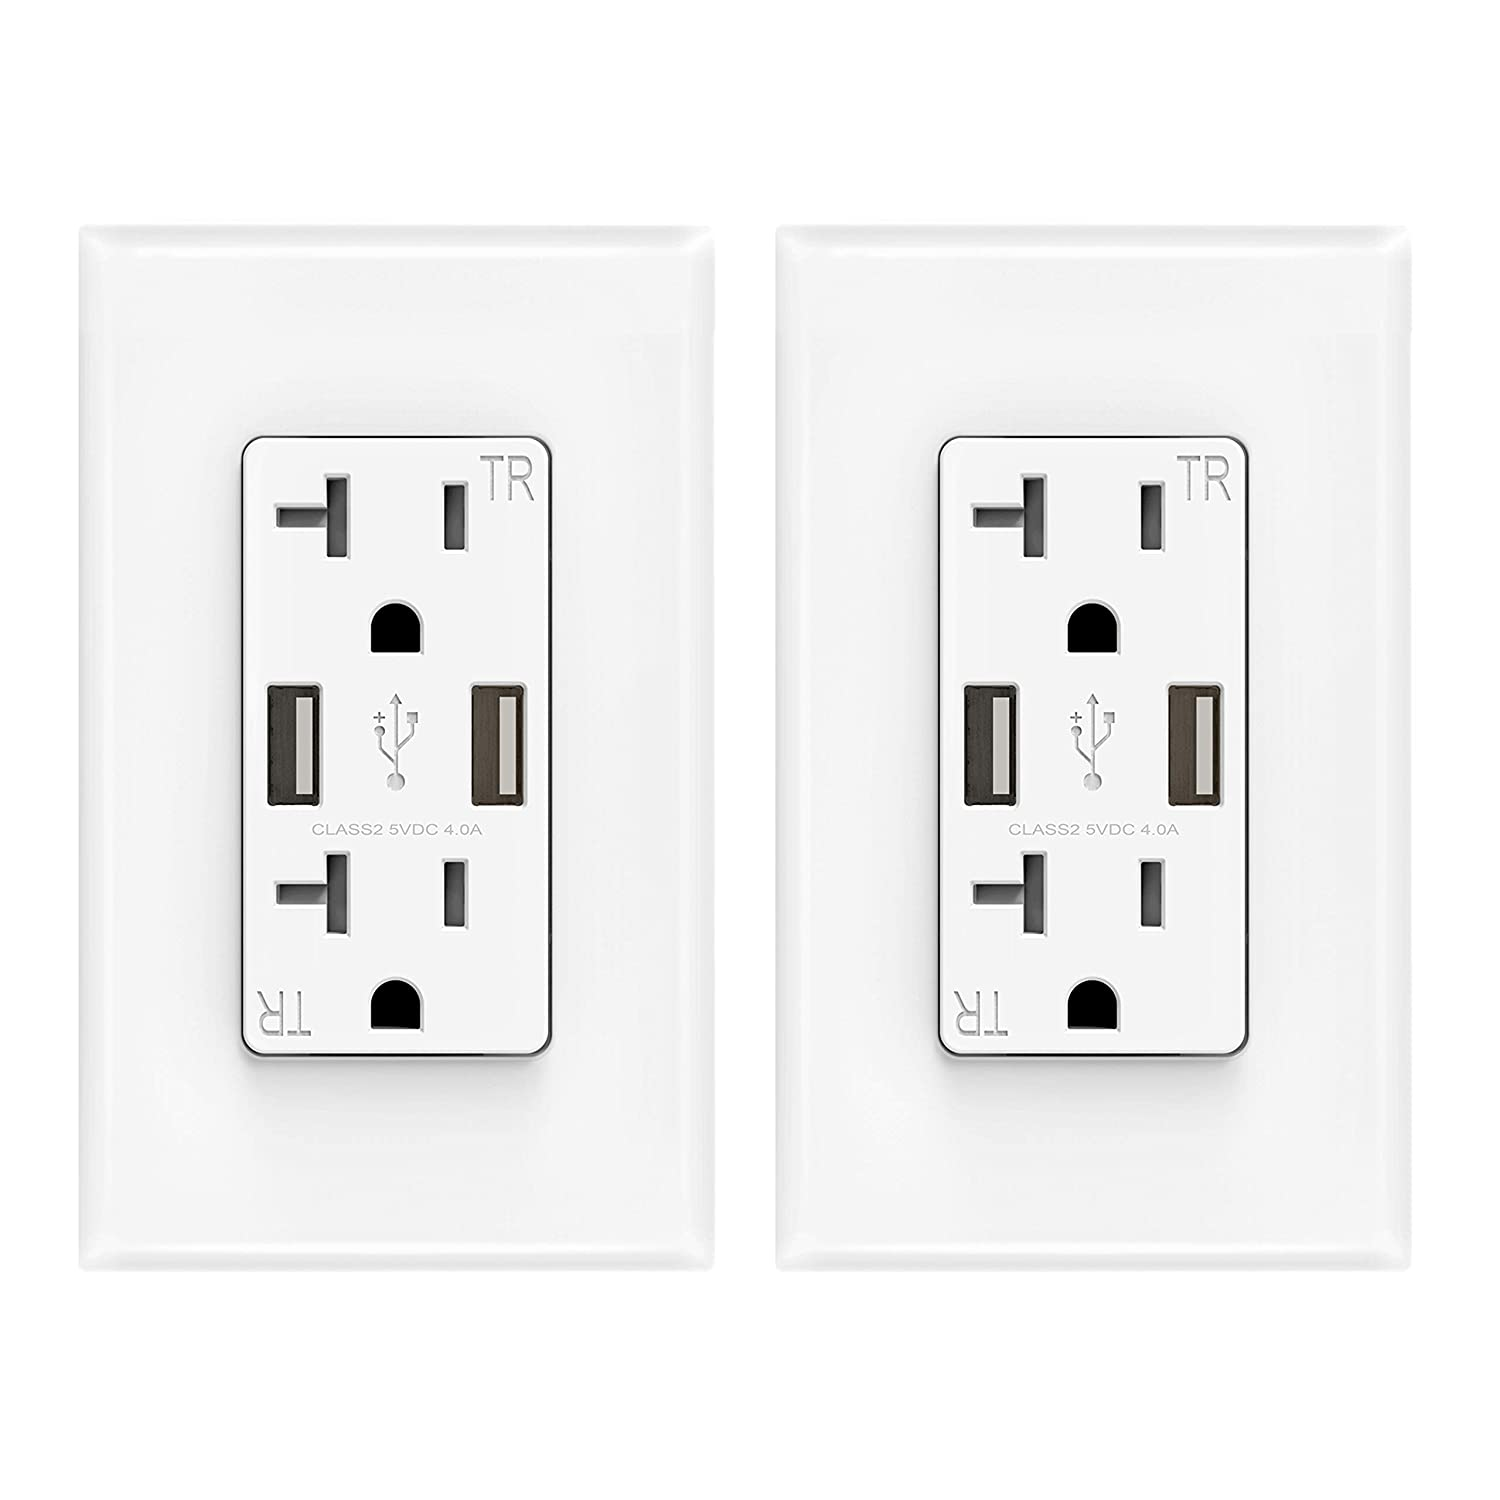 ELEGRP USB Charger Wall Outlet, Dual High Speed 4.0 Amp USB Ports with Smart Chip, 20 Amp Duplex Tamper Resistant Receptacle Plug, Wall Plate Included, UL Listed (2 Pack, Glossy White)